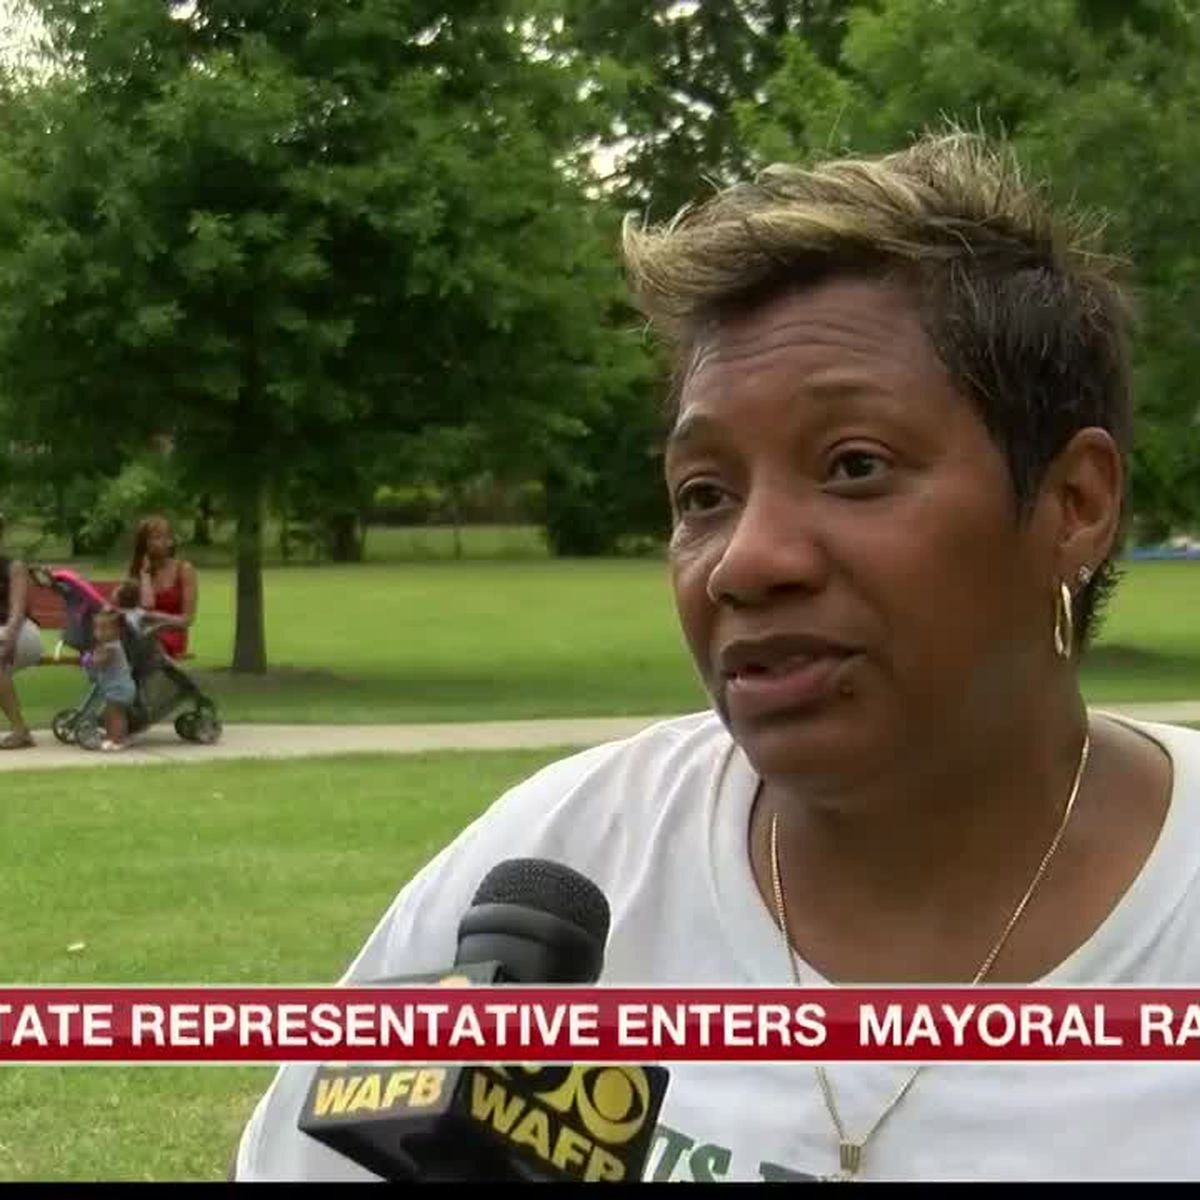 State Rep. C. Denise Marcelle enters Baton Rouge's mayoral race